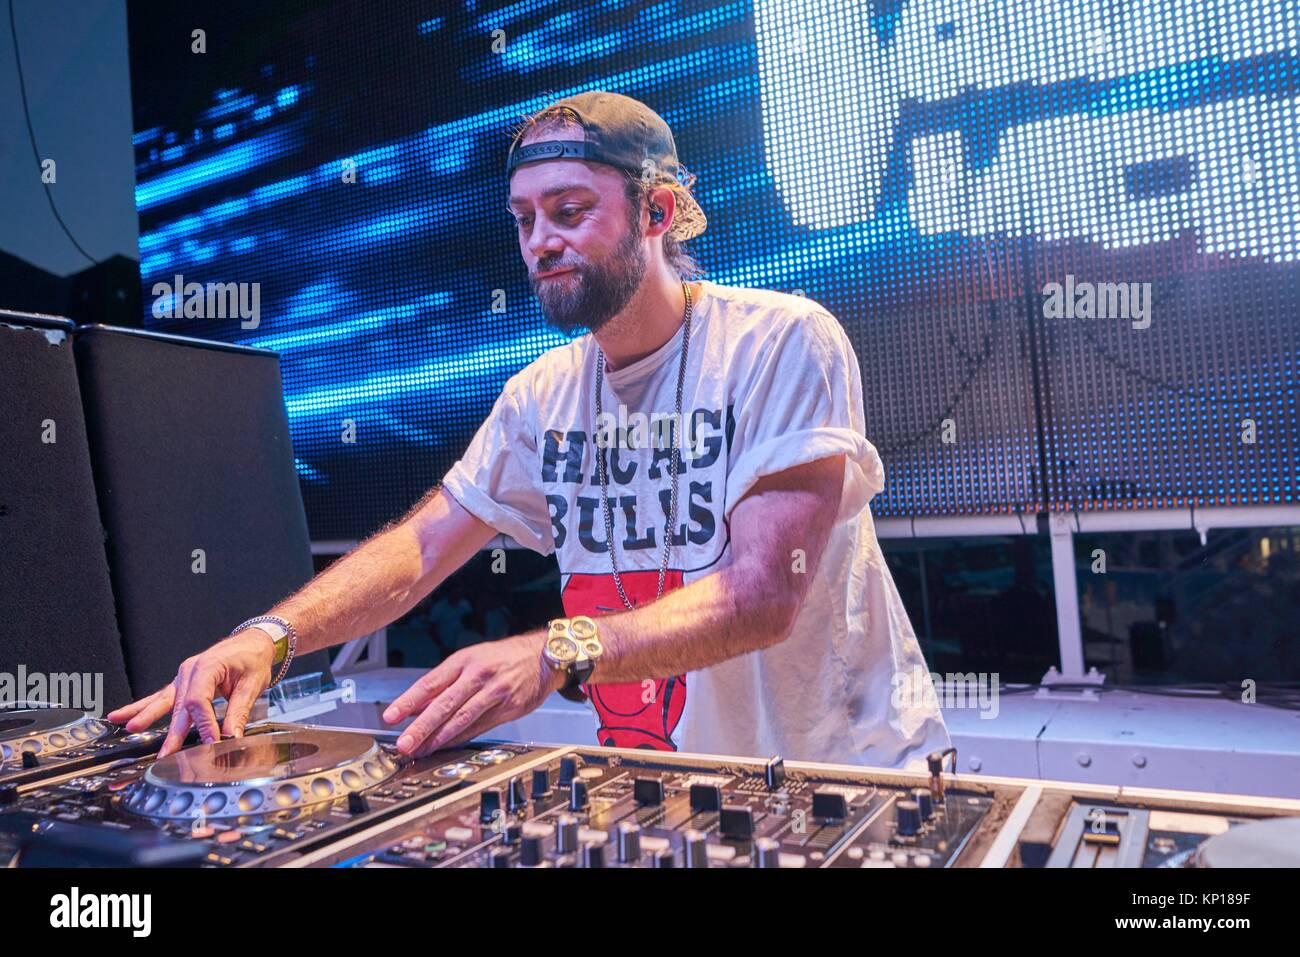 DJ Vato Gonzalez at music festival Starbeach in Hersonissos, Crete, Greece, on 24. July 2017 - Stock Image